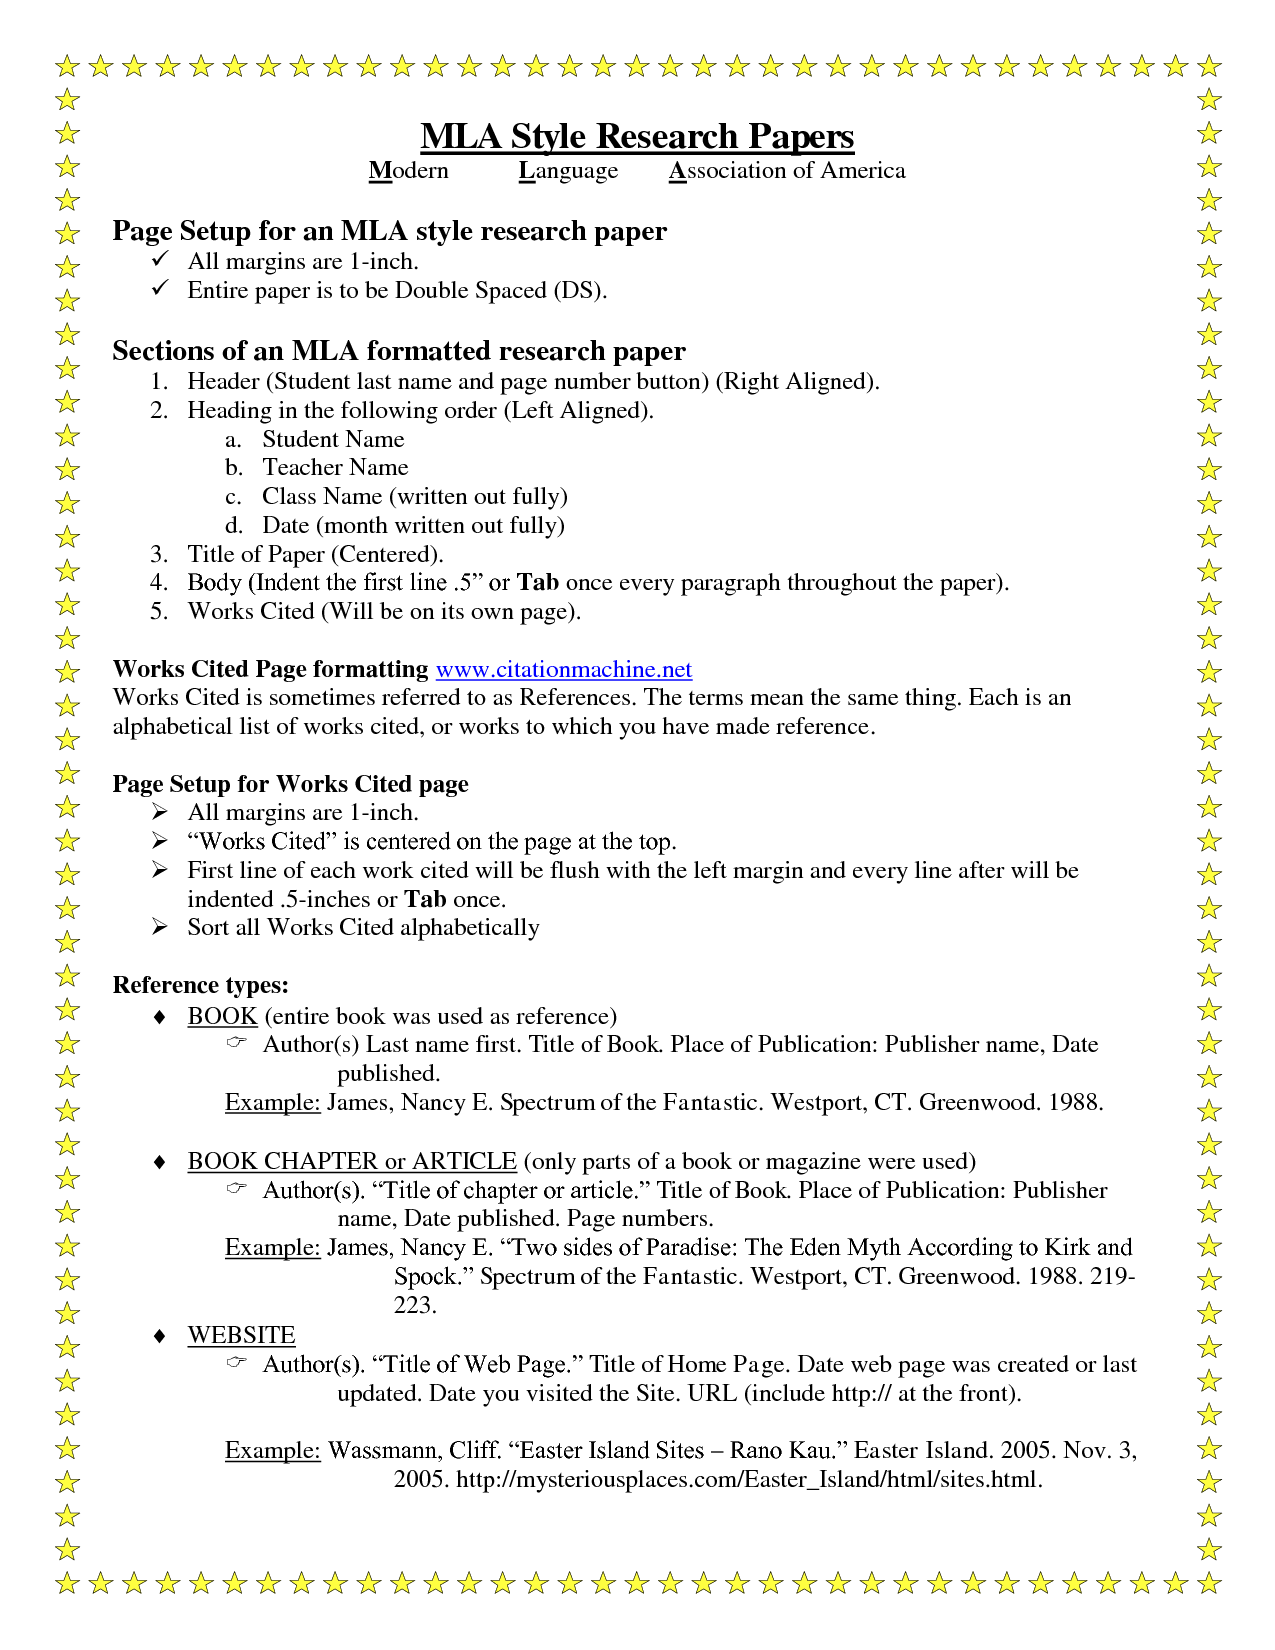 004 Research Paper Mla Format Section Headings Breathtaking Heading Spacing Full